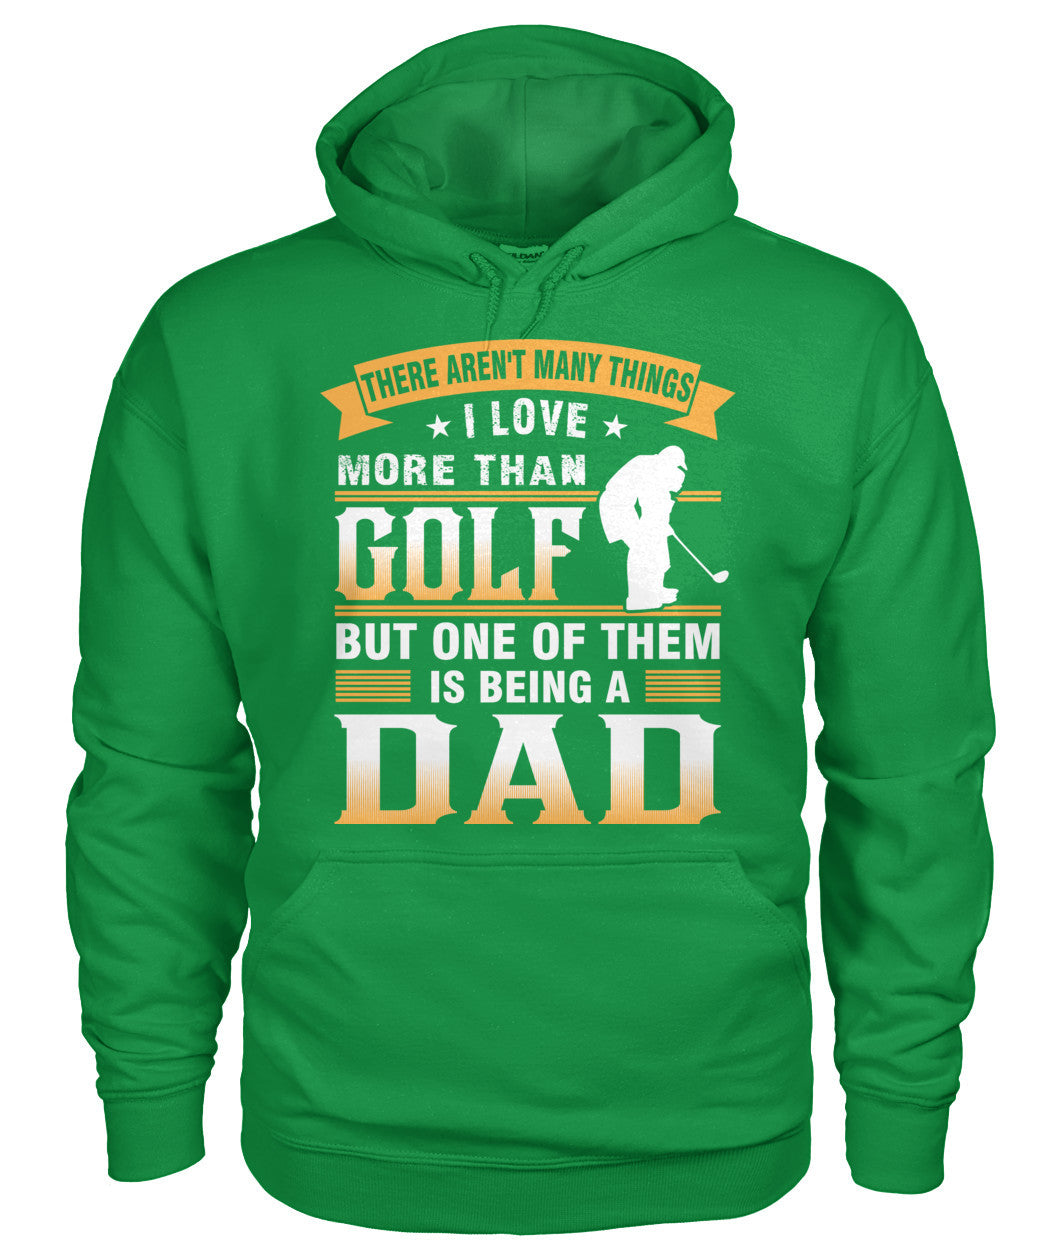 Golfer DAD shirt-Apparel - AllGolfUSA.COM